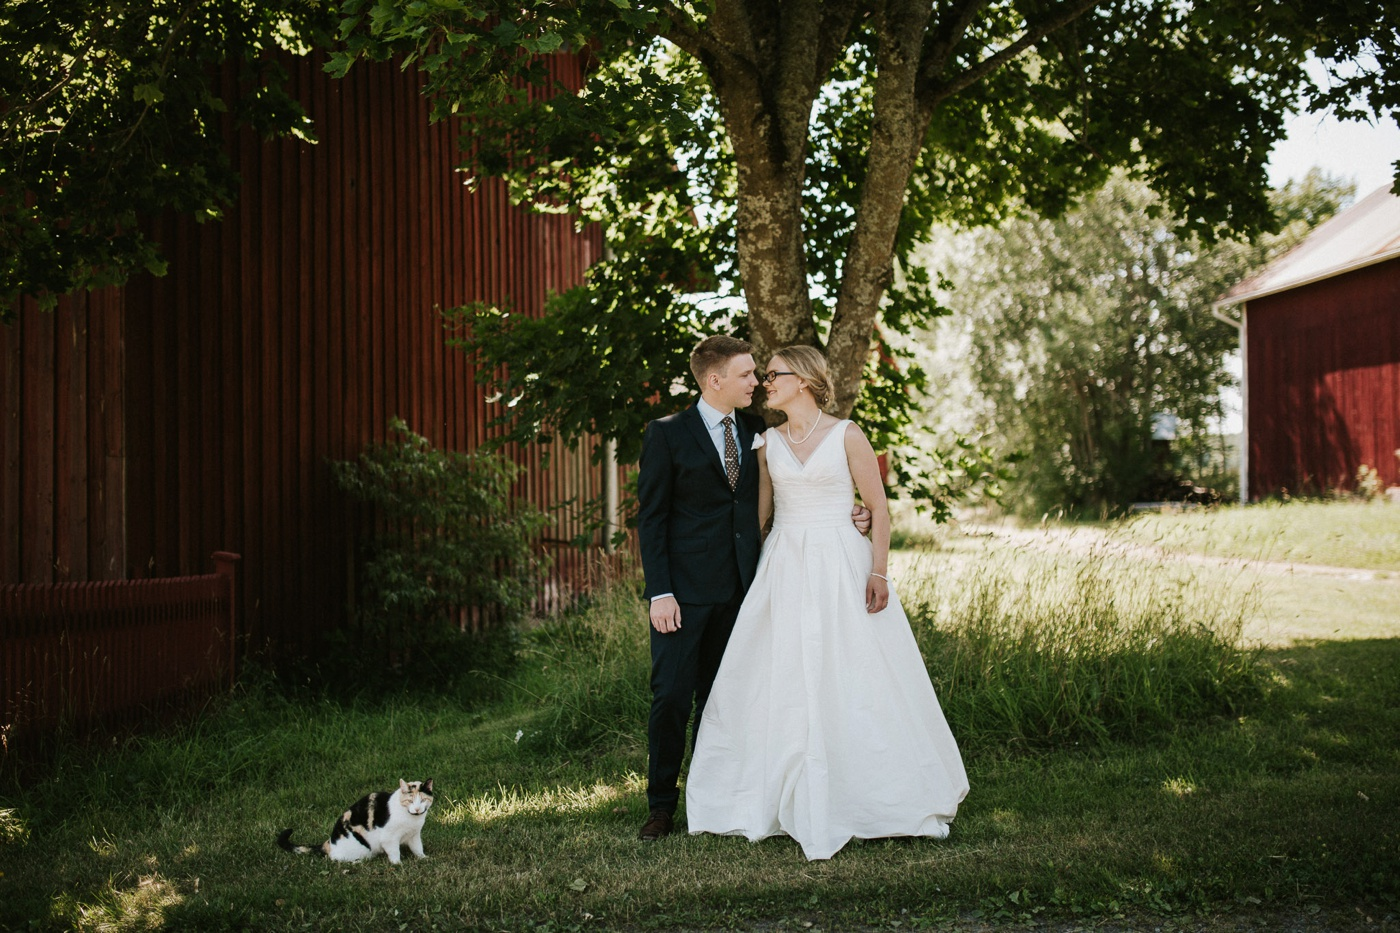 ceciliajoakim_sweden-countryside-summer-wedding_melbourne-fun-quirky-wedding-photography_51